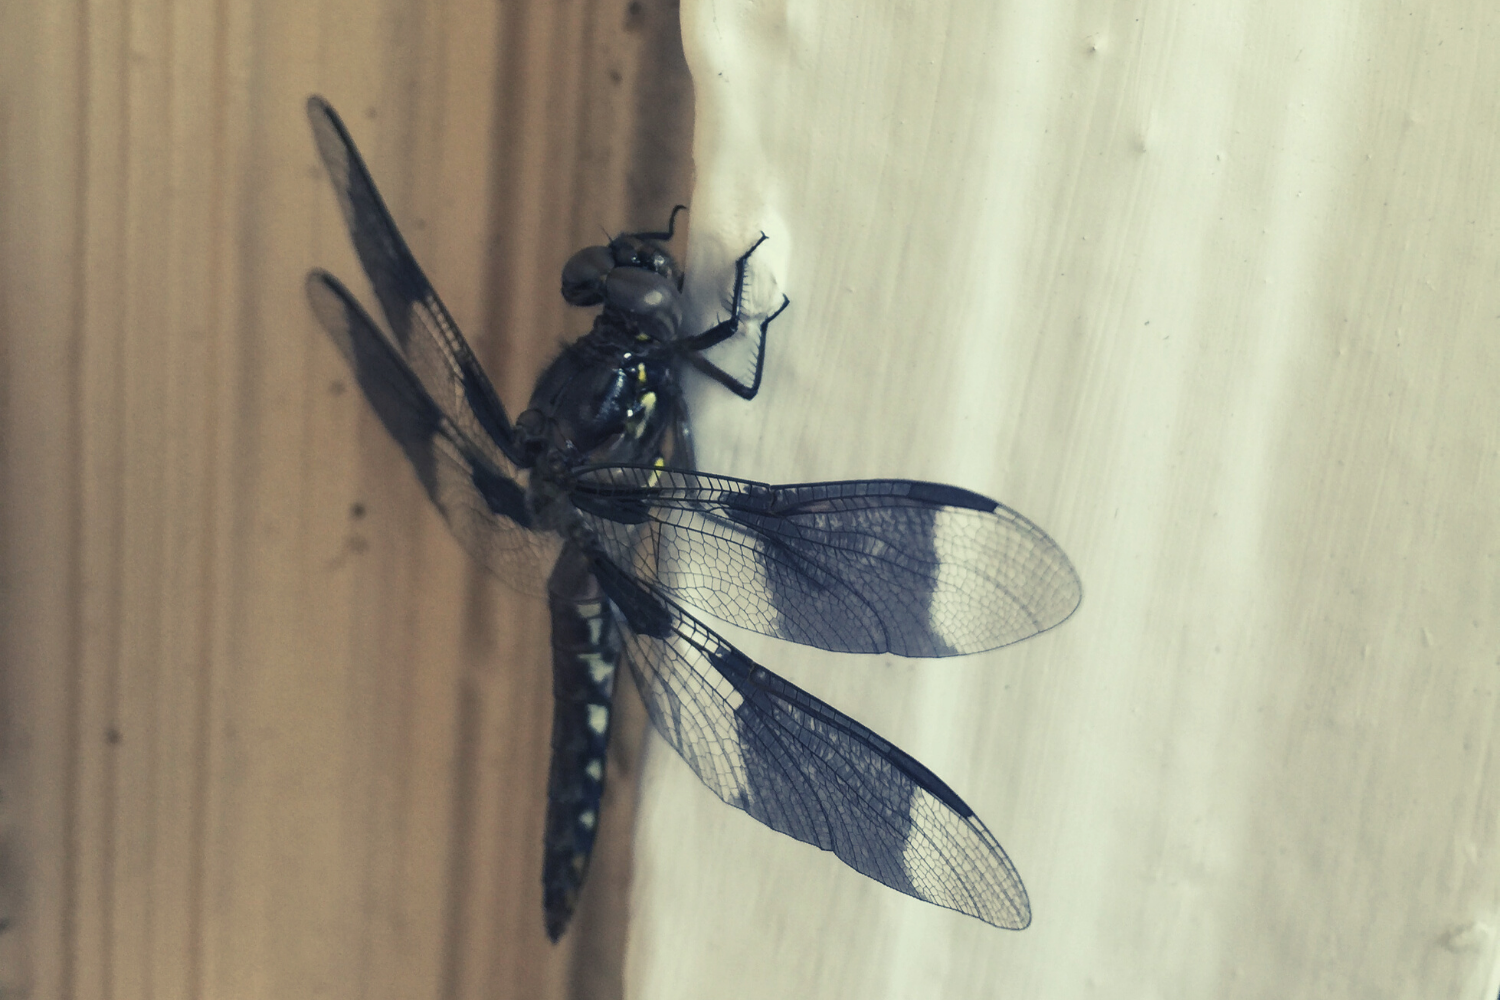 A dragonfly on a door frame